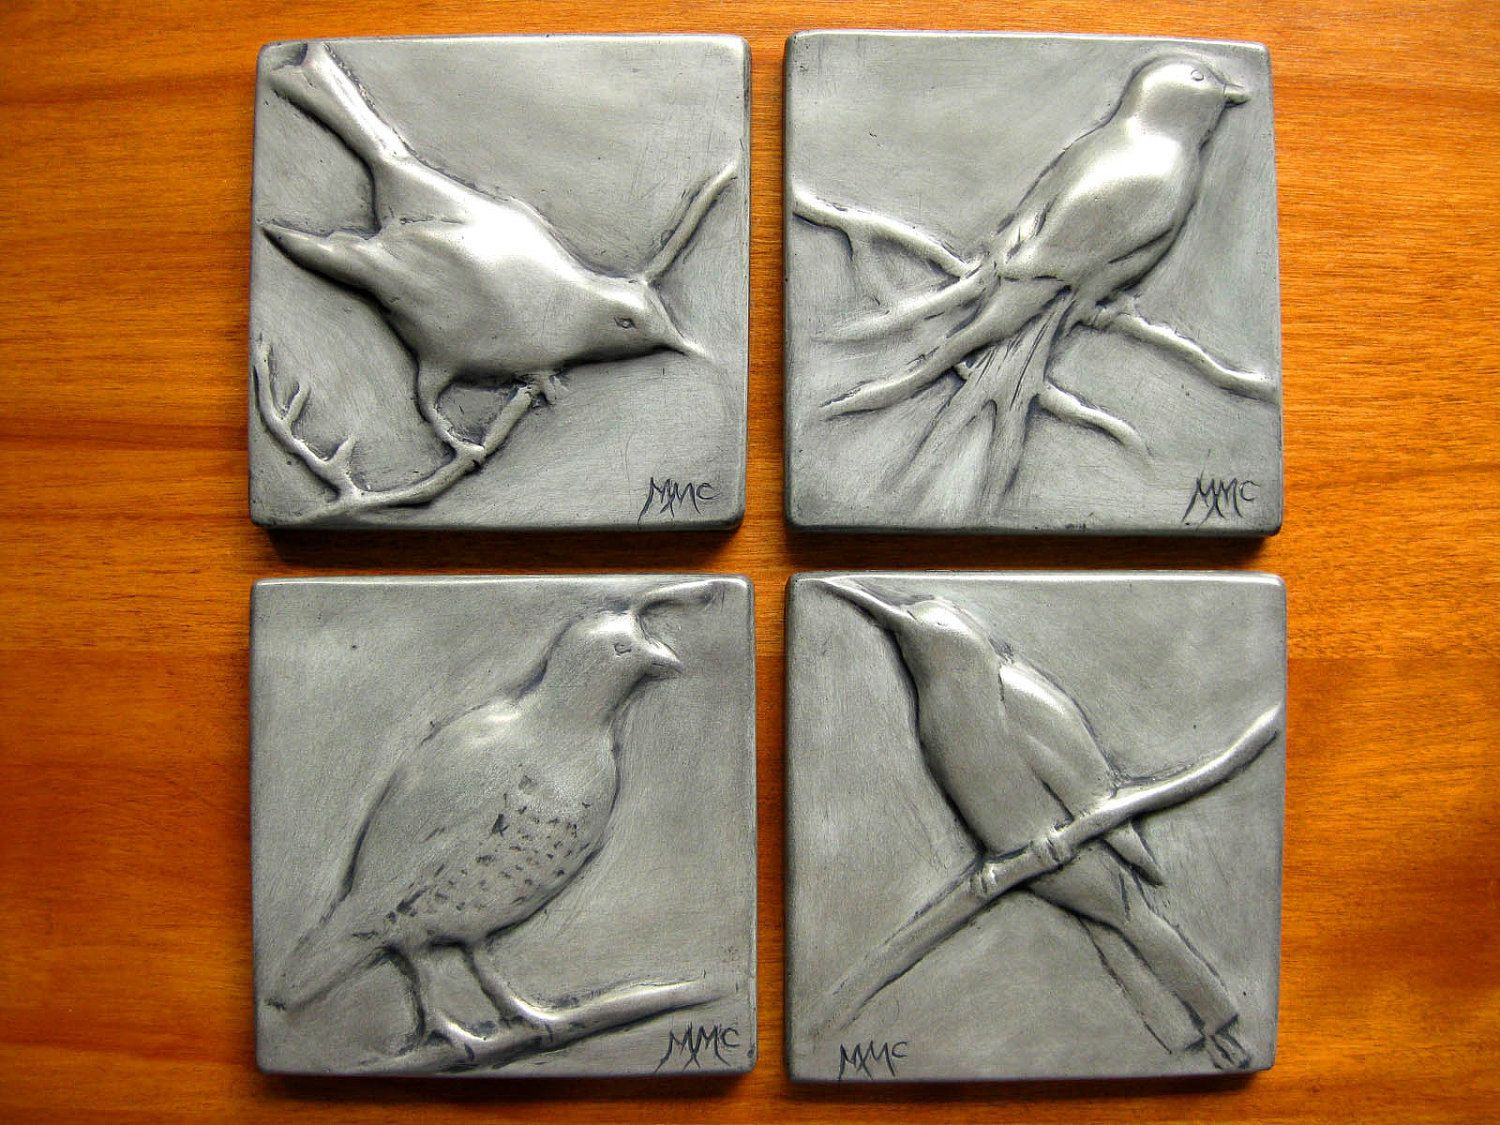 Nickel songbird or quail bas relief tile your choice of one 4 x 4 art tiles dailygadgetfo Gallery